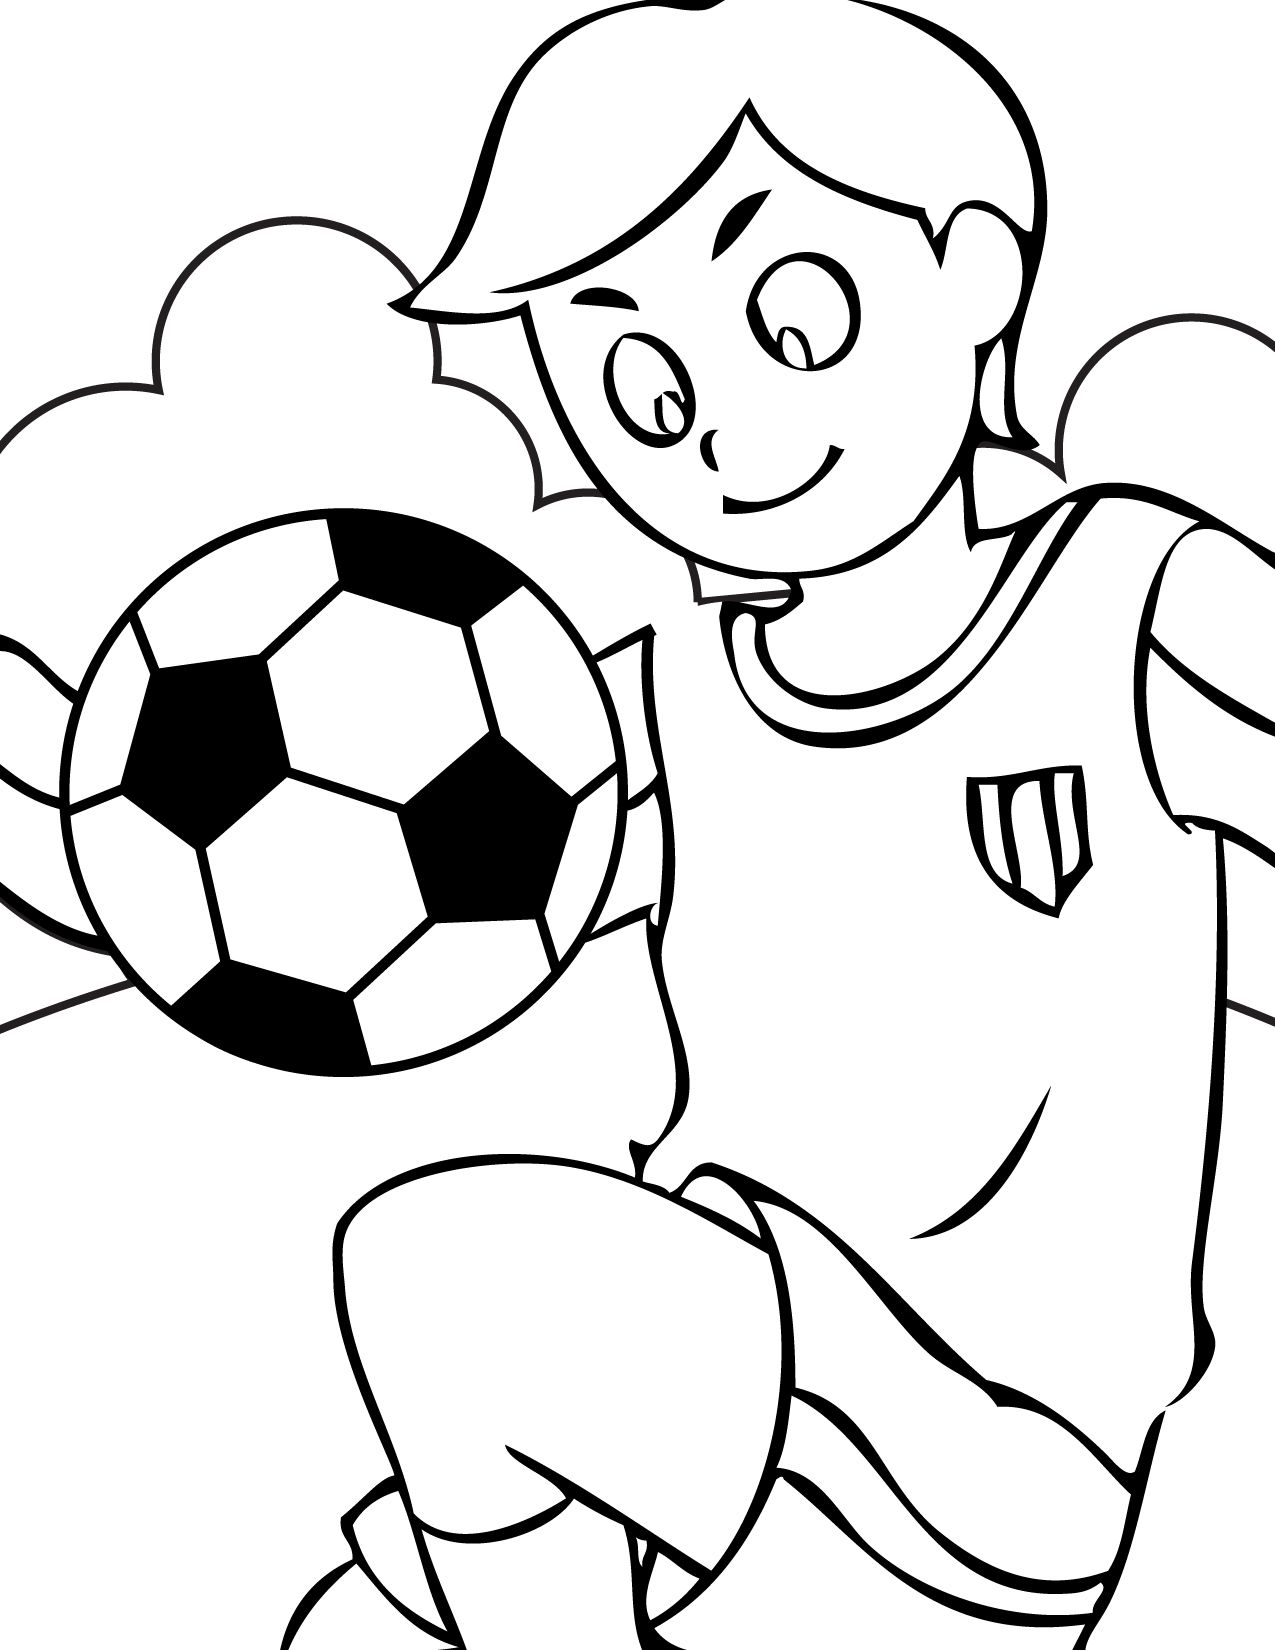 Free Printable Sports Coloring Pages For Kids Sports Pinterest